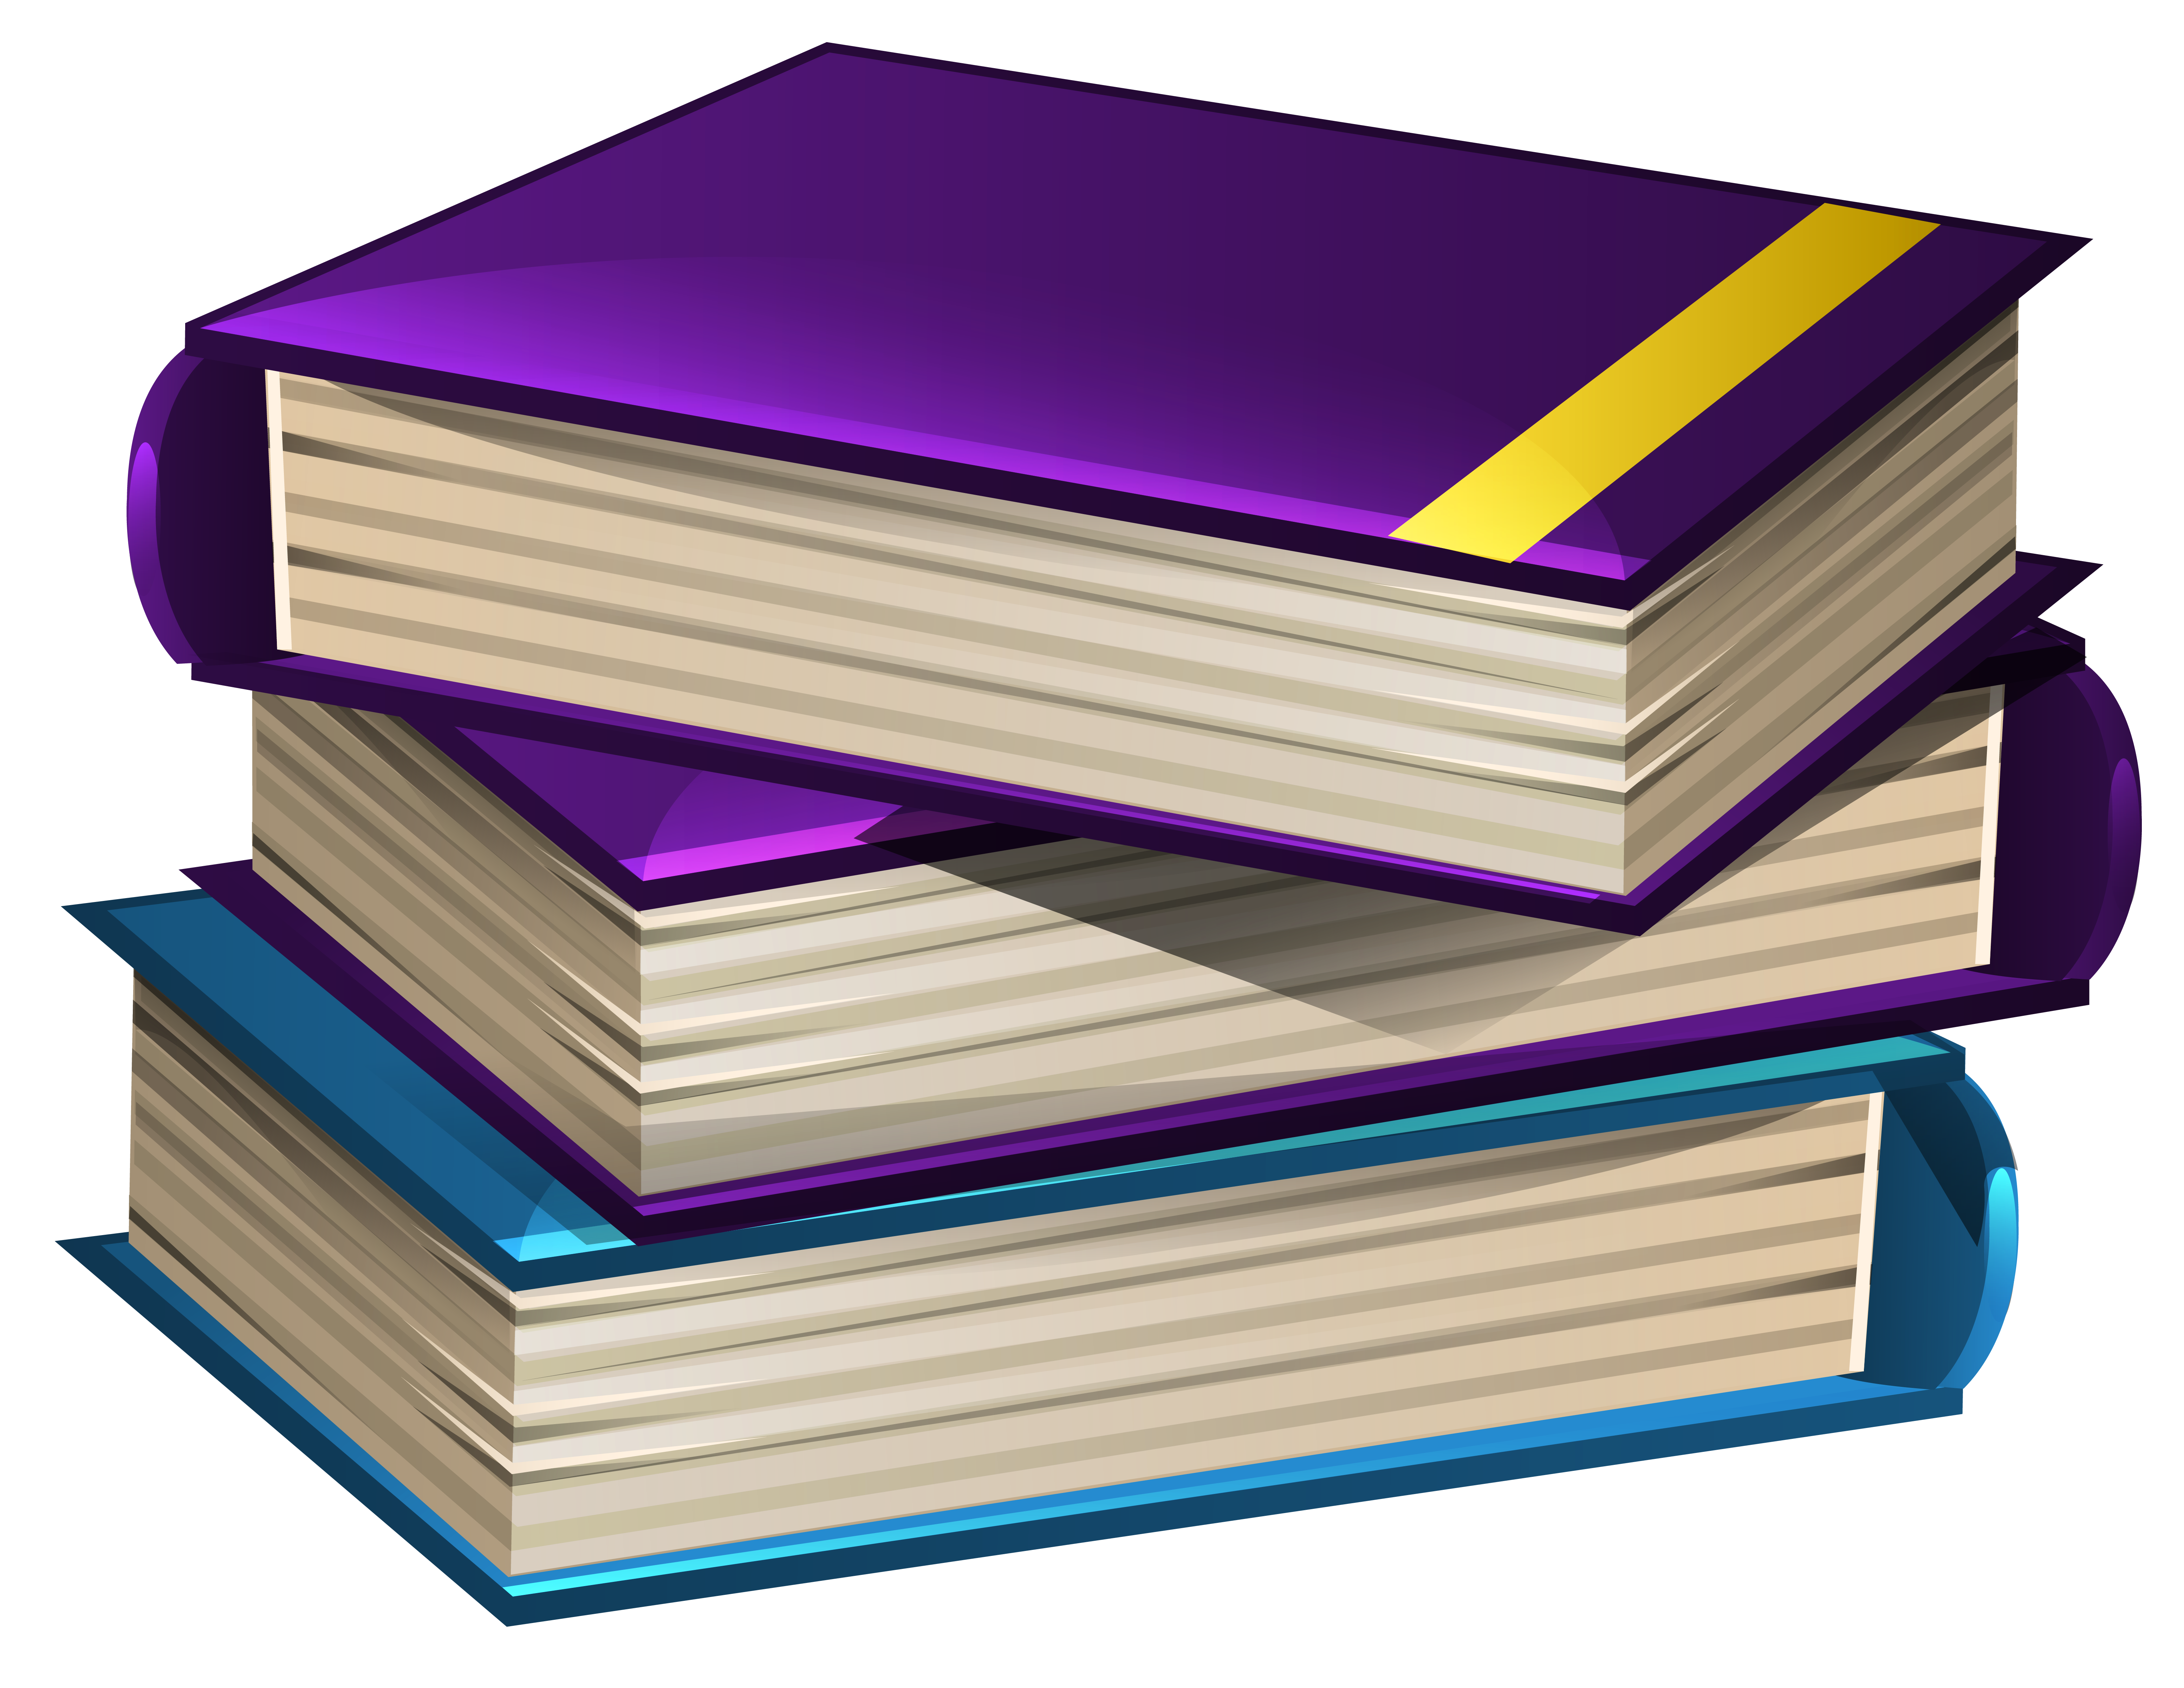 School Books PNG Clipart Image.